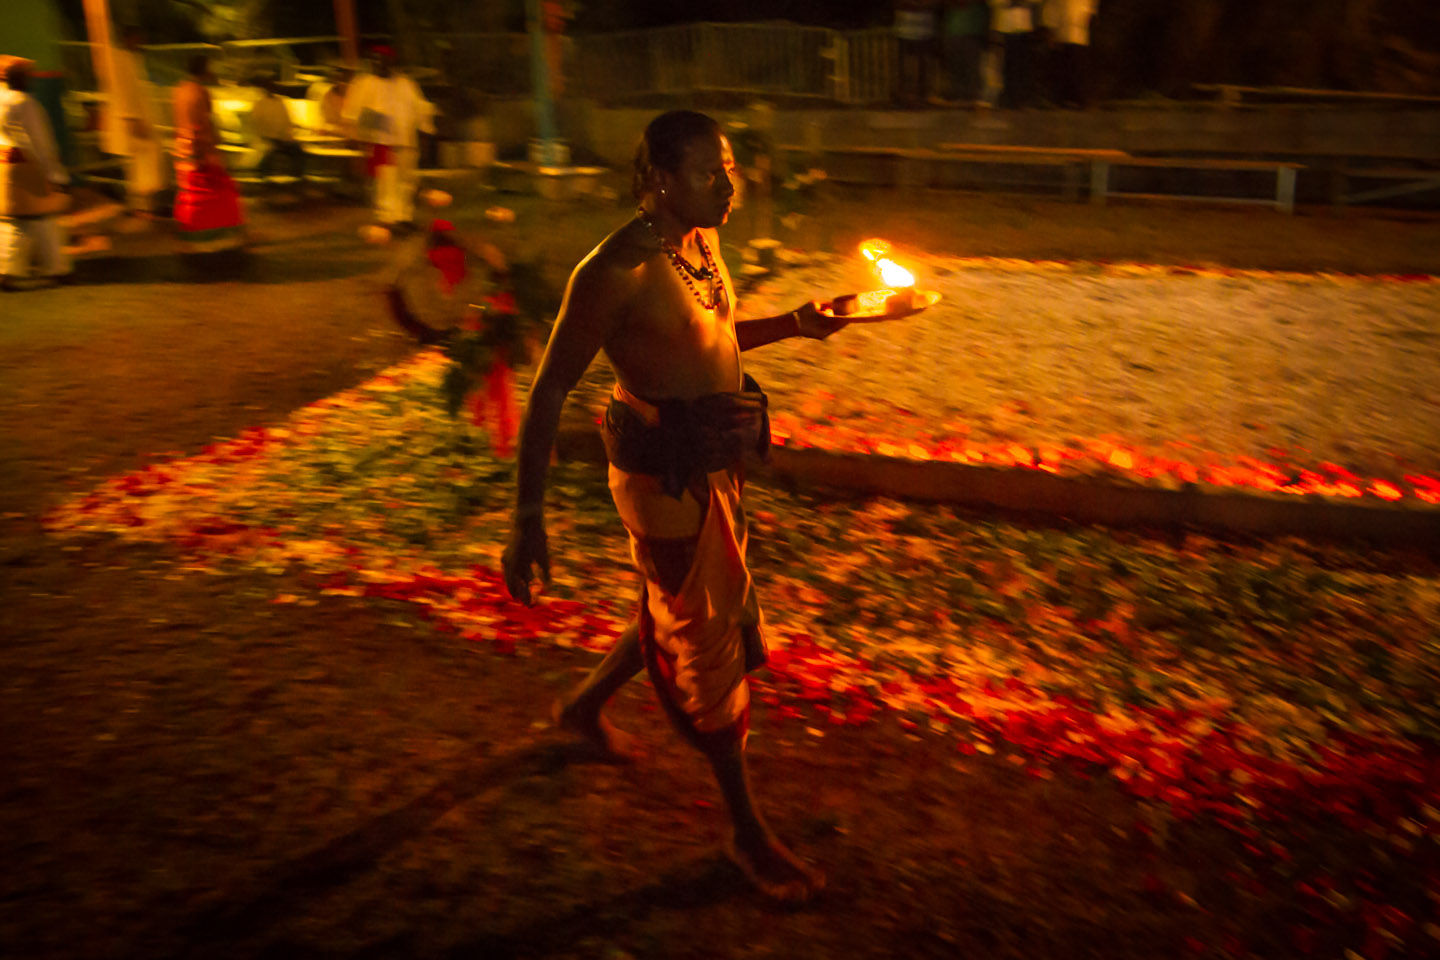 Priest with flowers and fruits offering at Marche sur le feu firewalk La Reunion